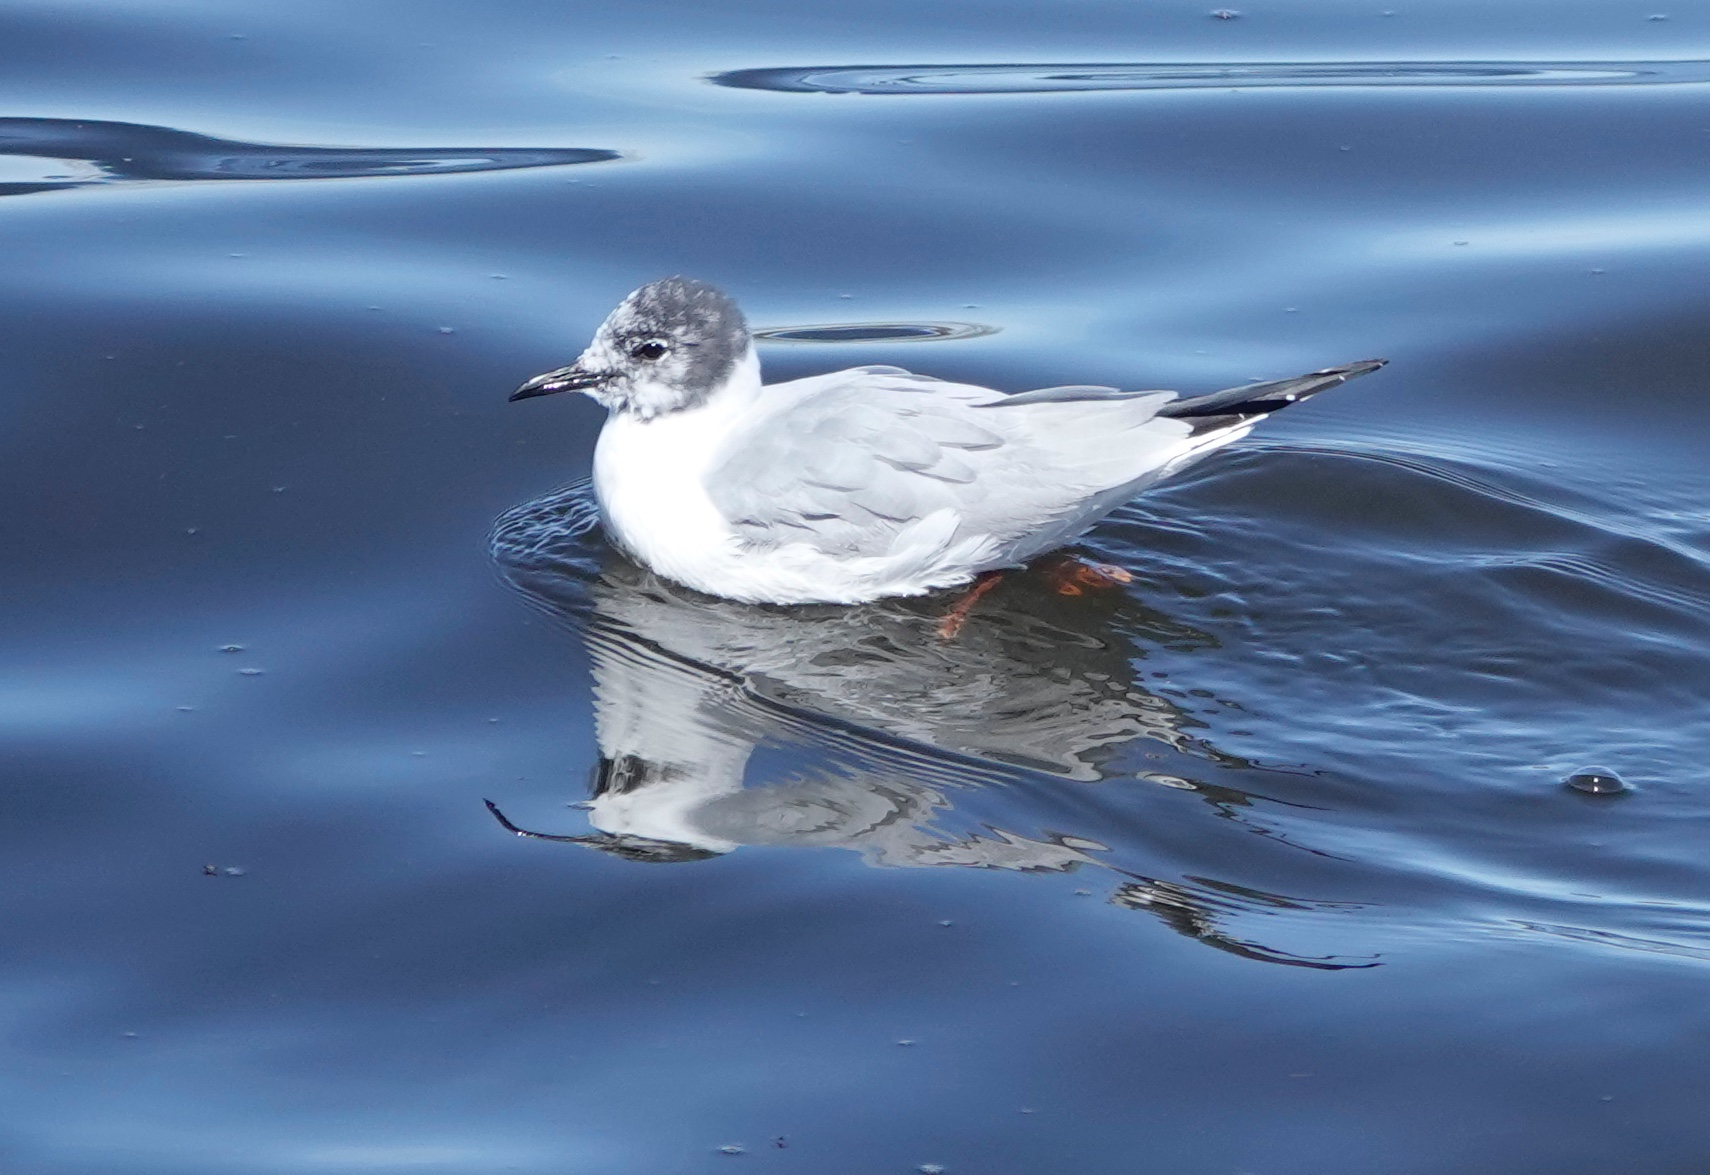 The Bonaparte's gull was named in honor of ornithologist Charles Lucien Bonaparte.